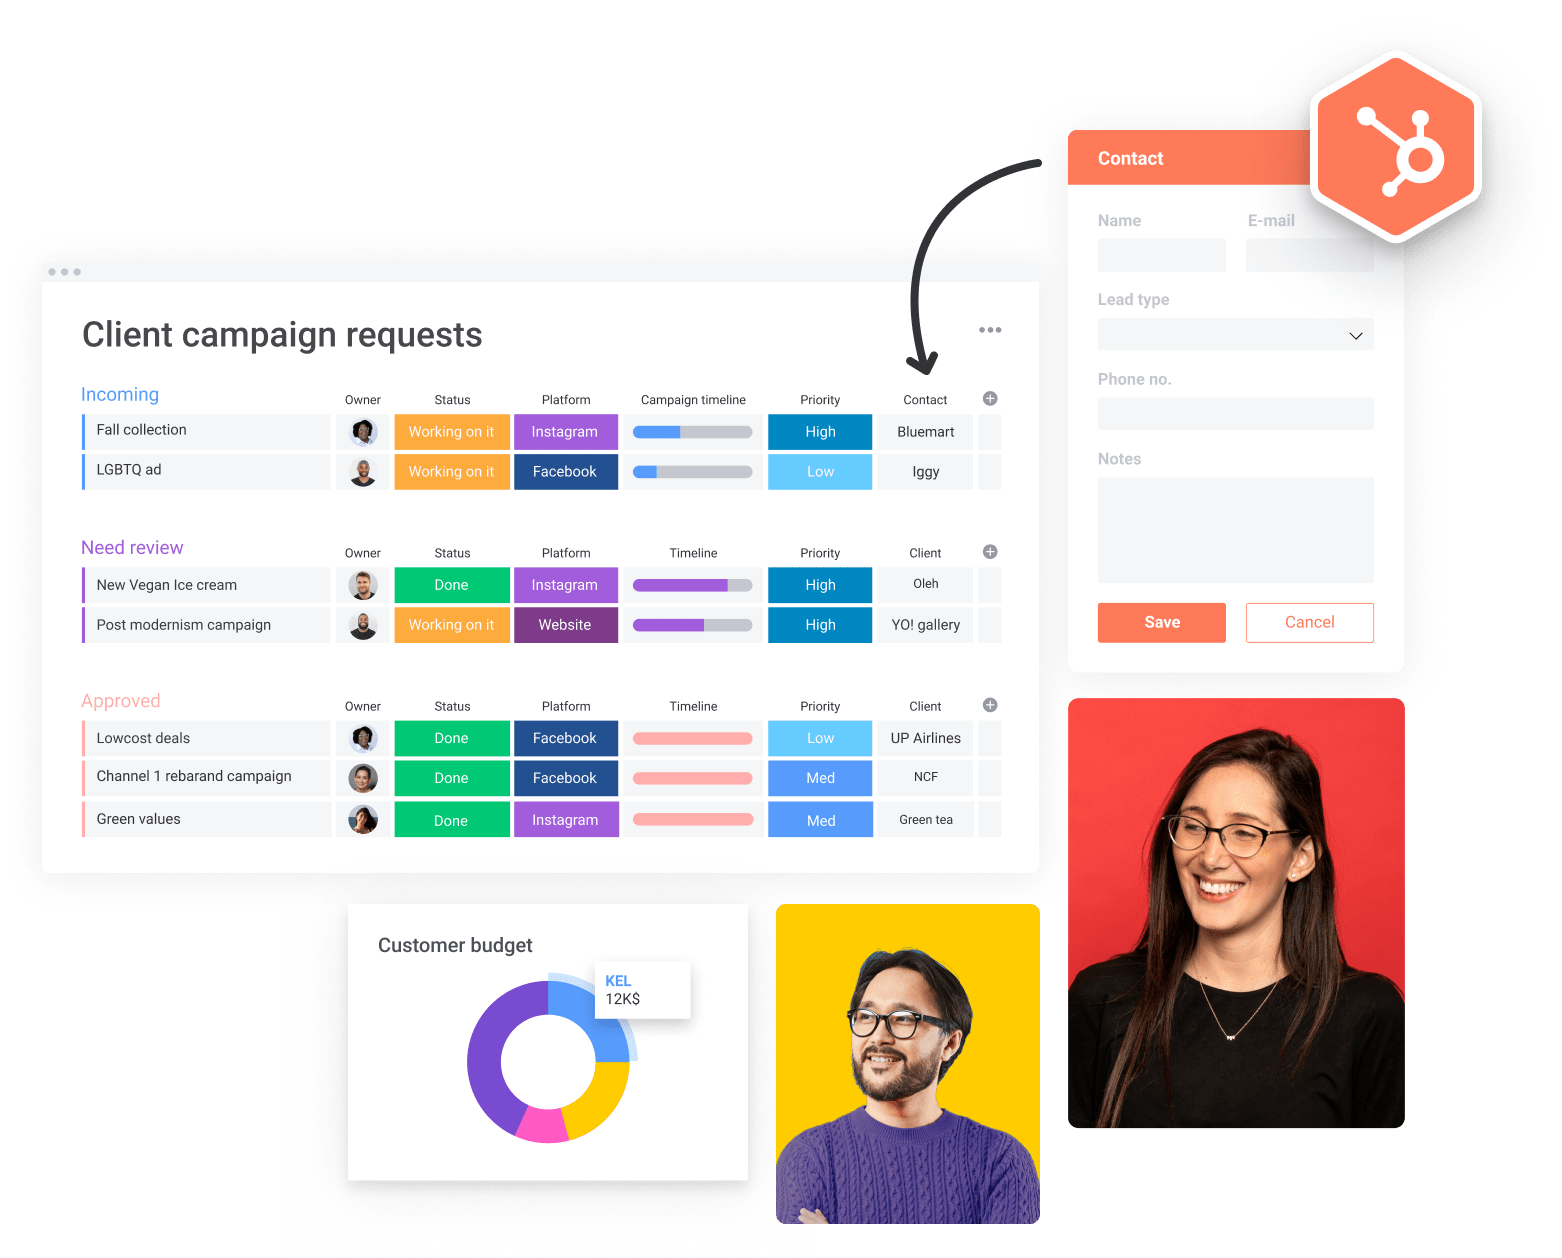 Managing Client Campaigns